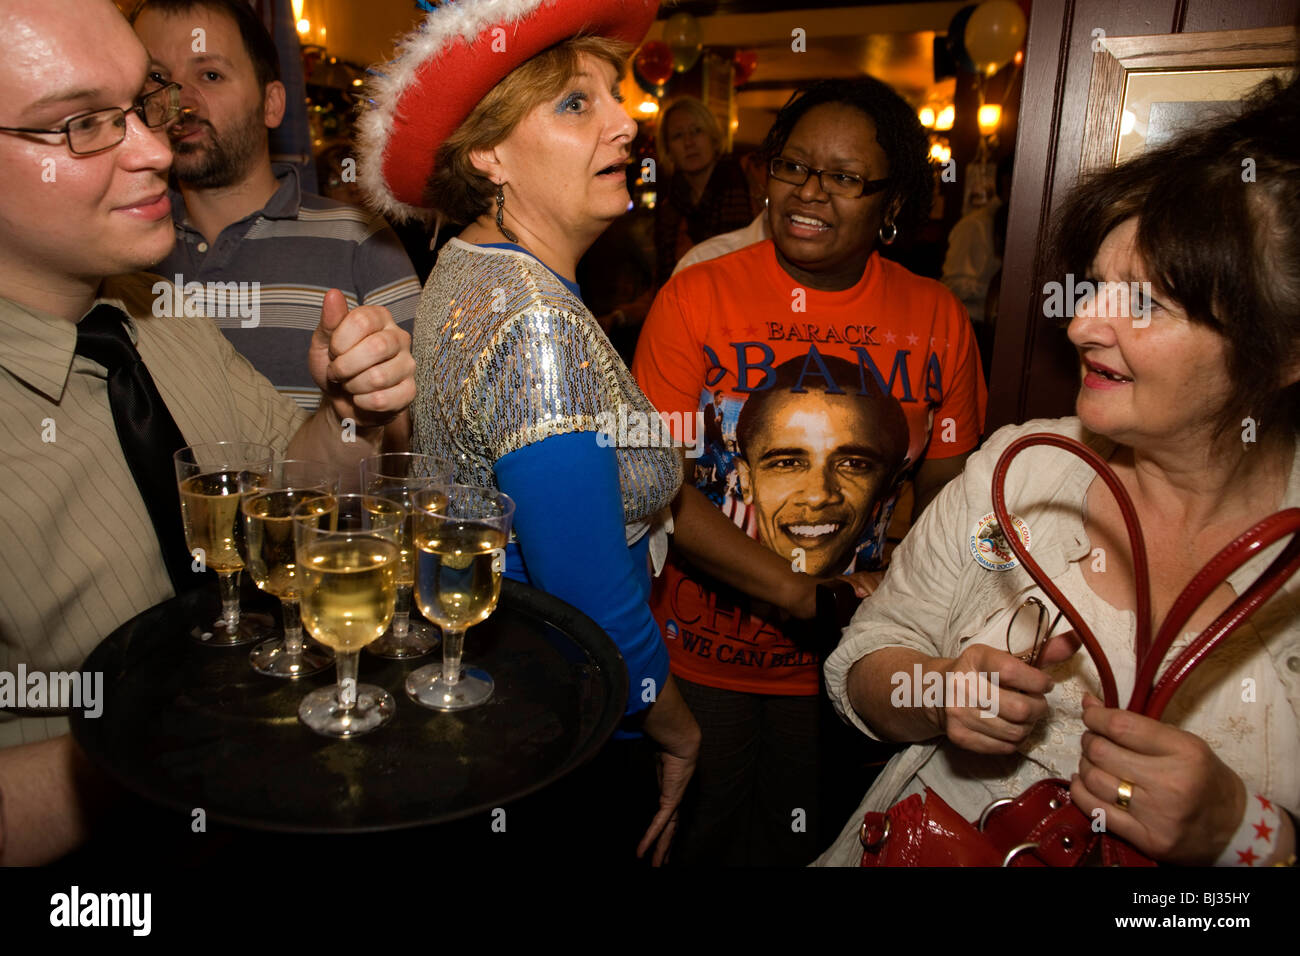 A group of Democratic party supporters look ecstatically happy after the final news of Barack Obama's victory - Stock Image